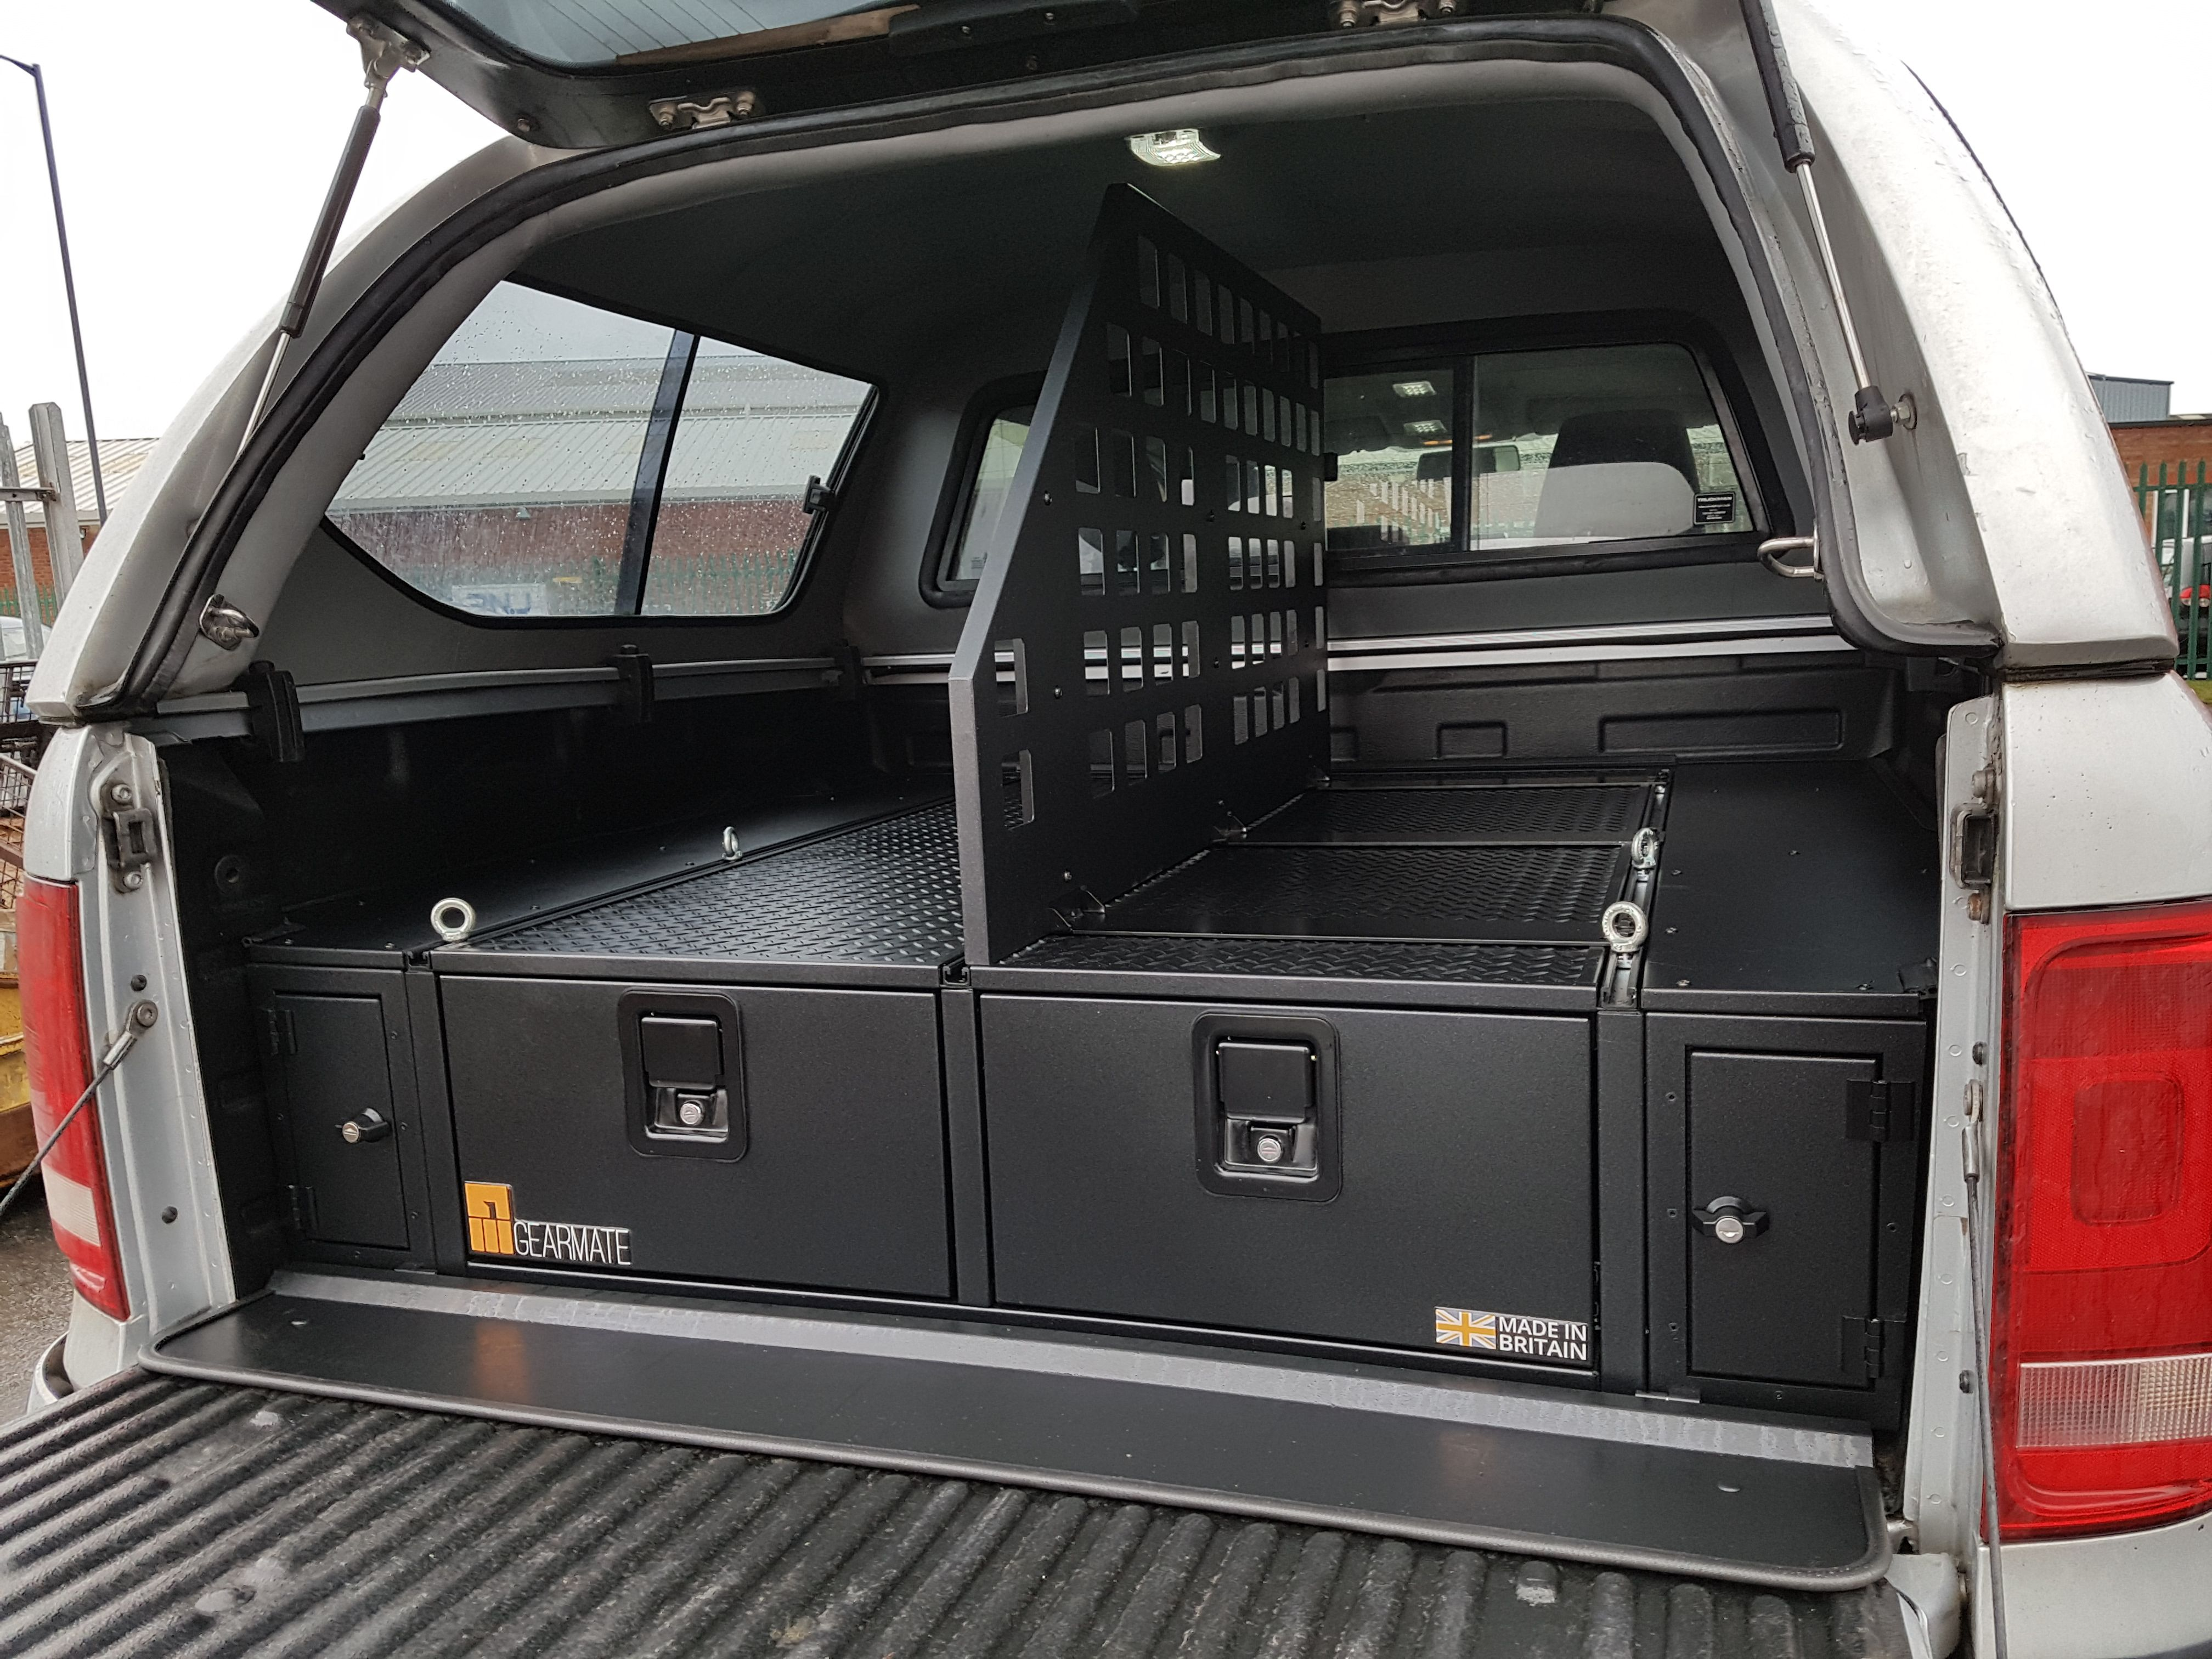 Volkswagen Amarok With Gearmate 300mm Twin Drawer Front Locking Pods Tailgate Gap Flap And Central Divider Truck Bed Camping Hilux Camper Truck Bed Drawers